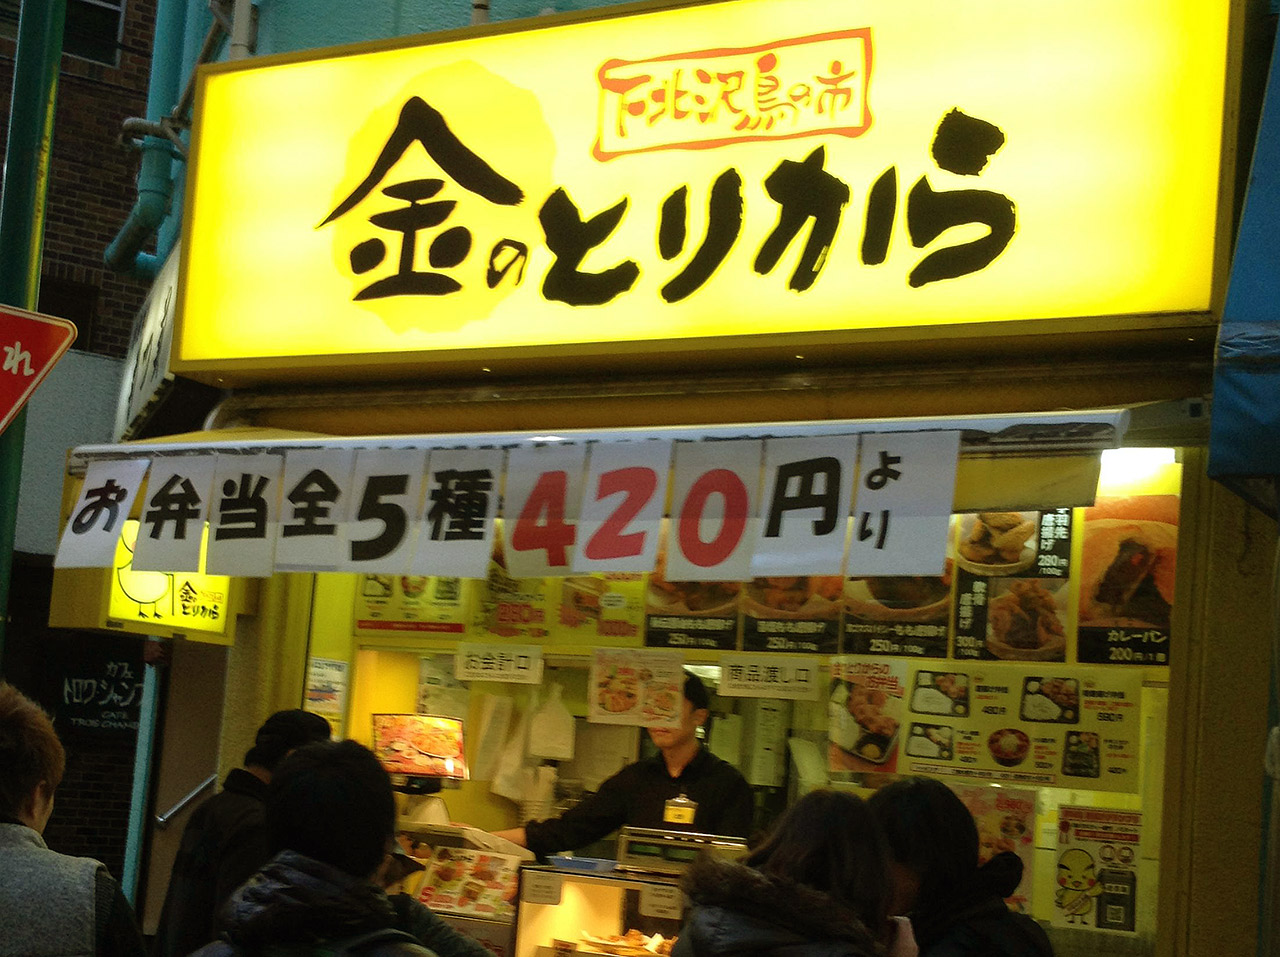 cheap japanese food stand 420 yen japan